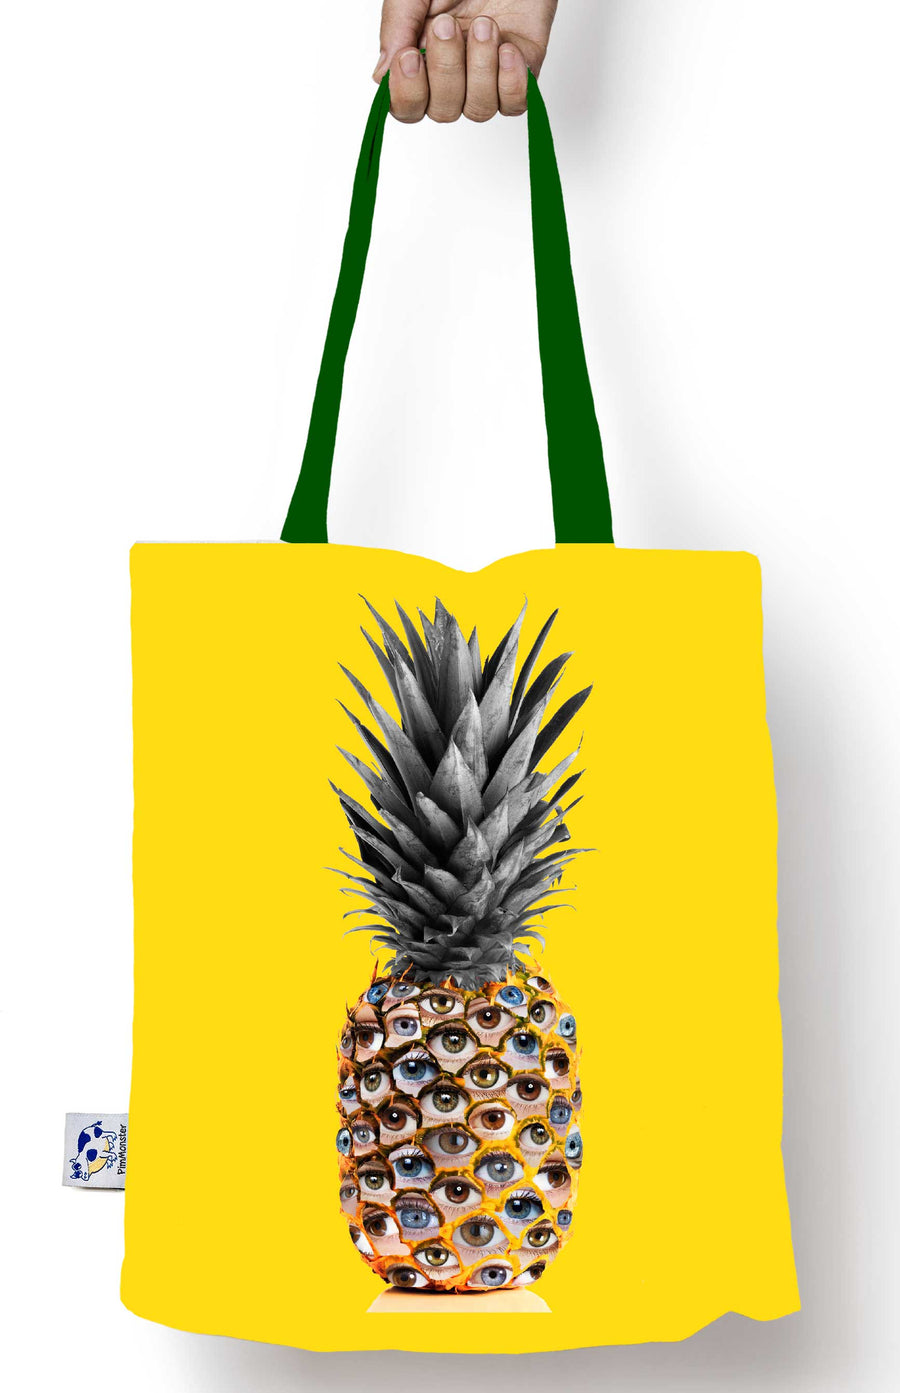 5e69337b1 The Glance, the eyes on the pineapple tote bag